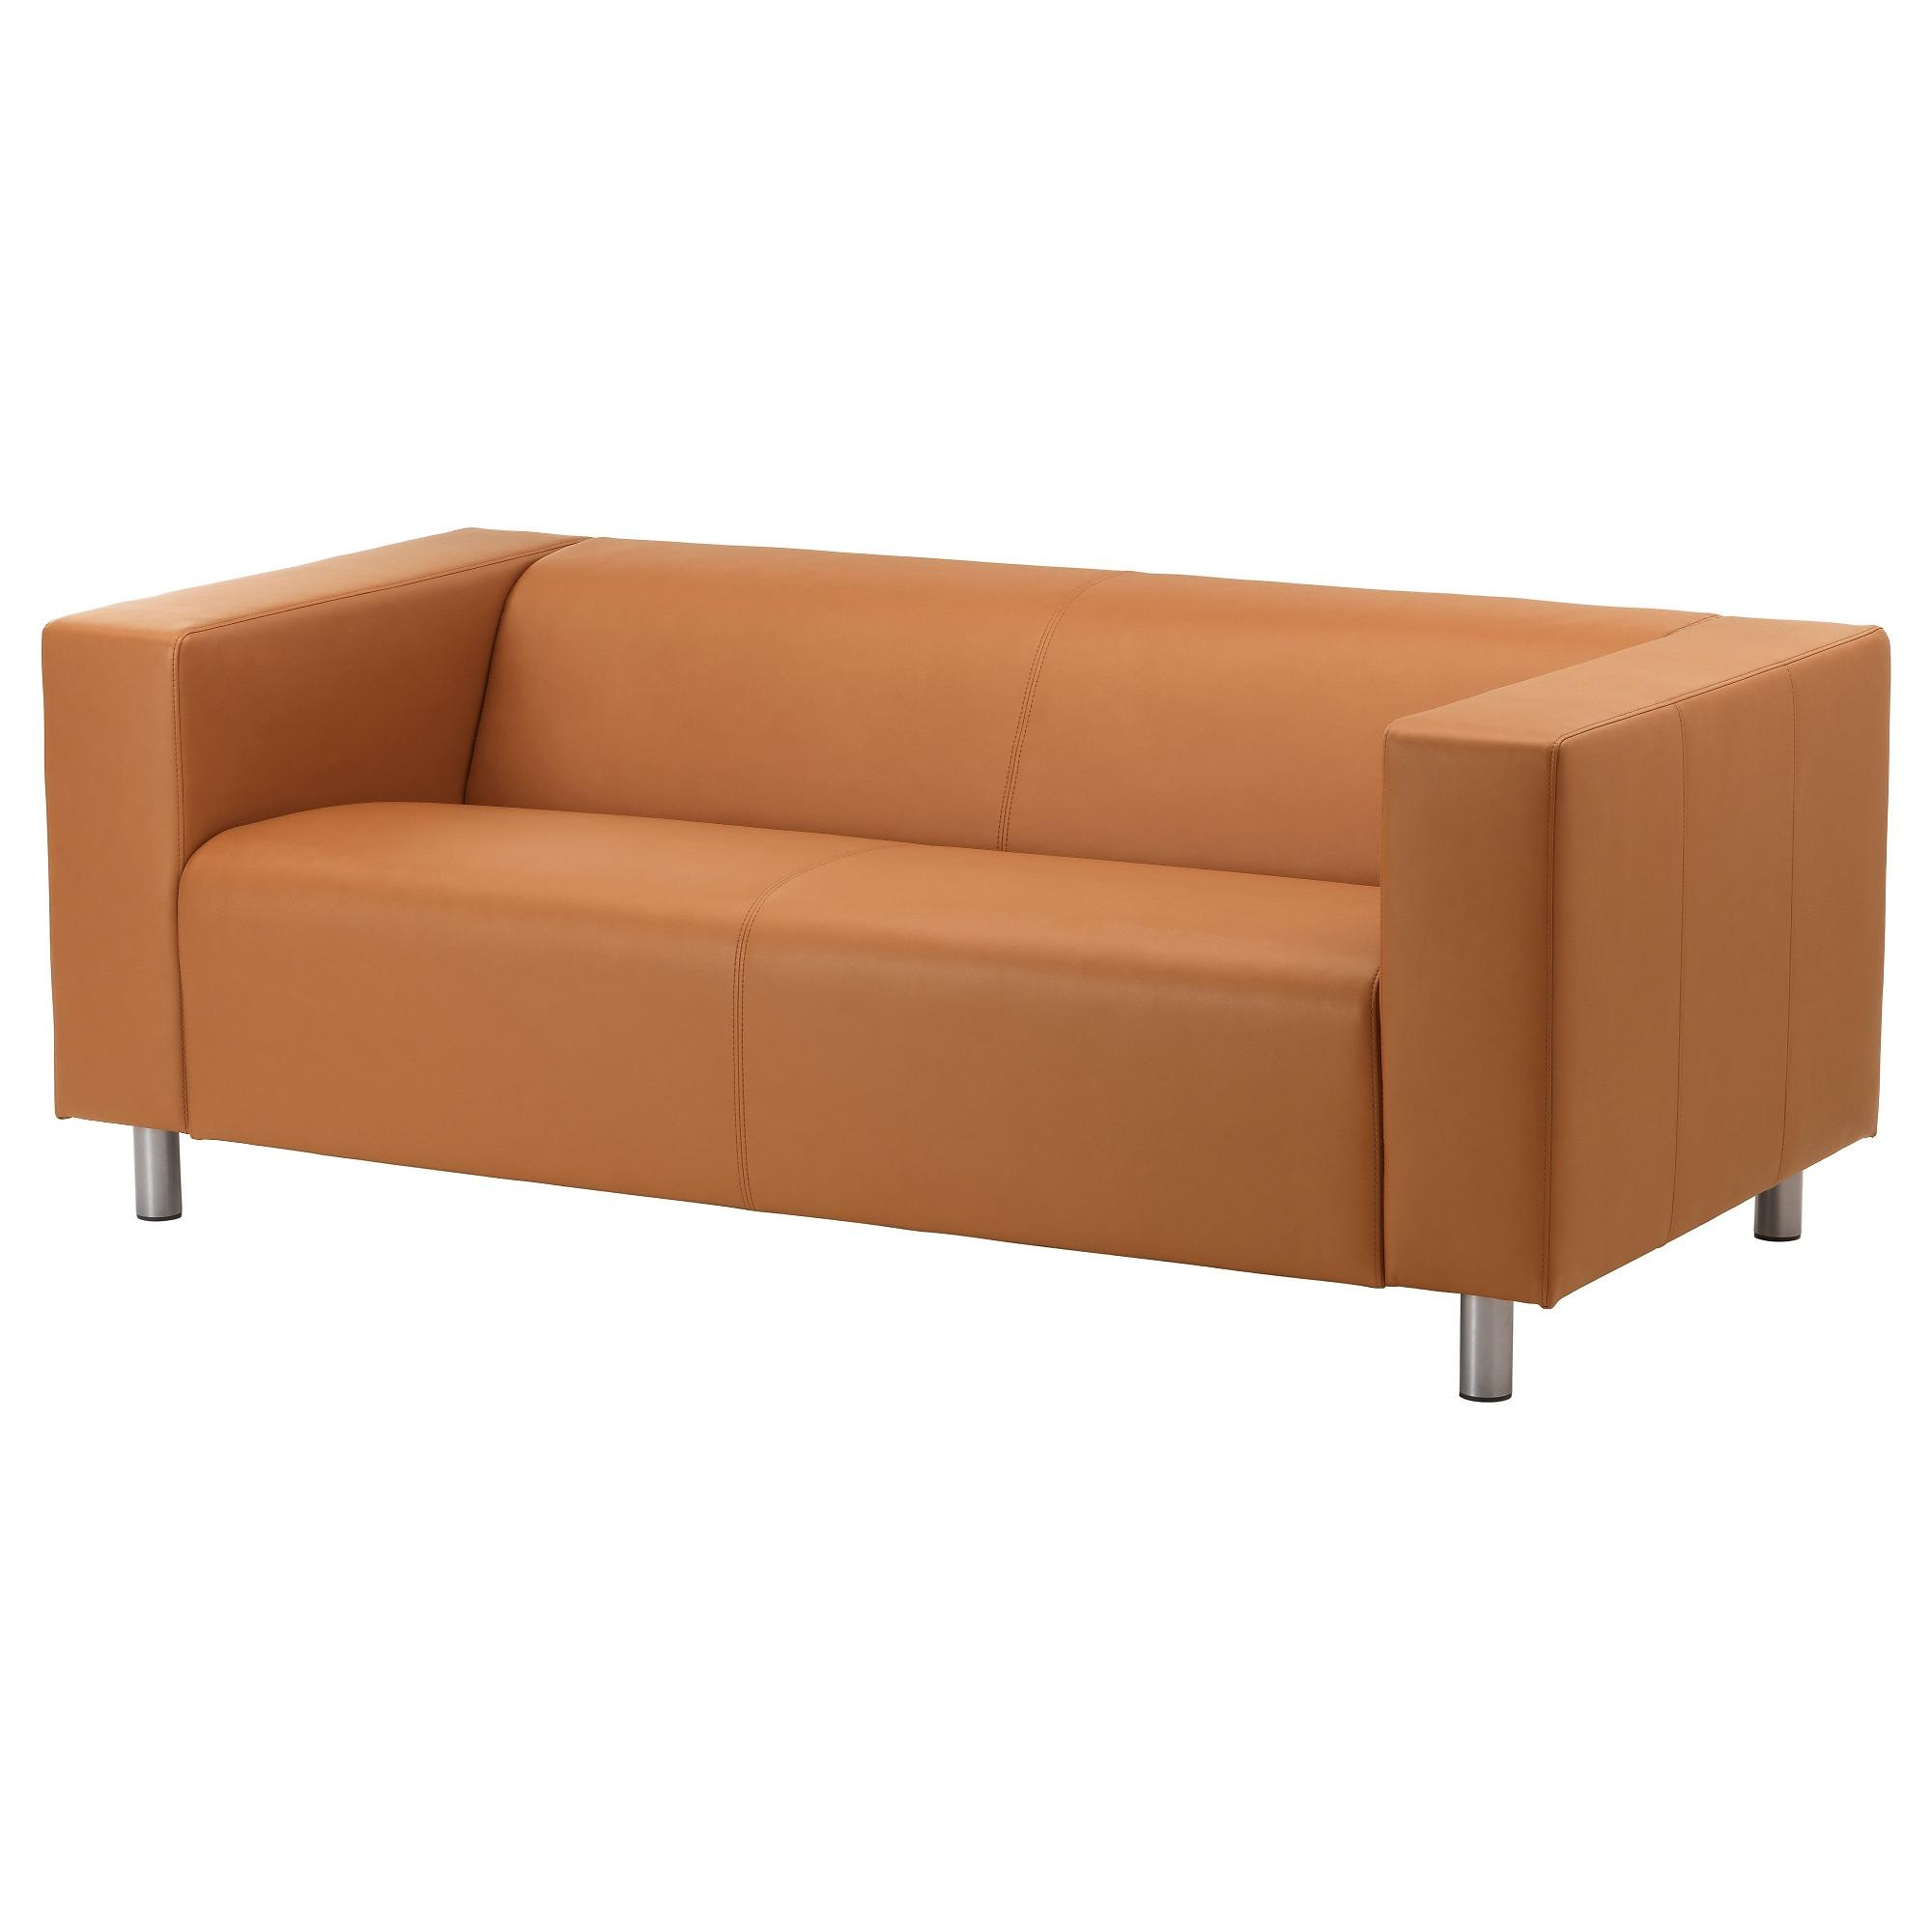 Leather & Faux Leather Couches, Chairs & Ottomans – Ikea With Regard To Light Tan Leather Sofas (Image 9 of 20)